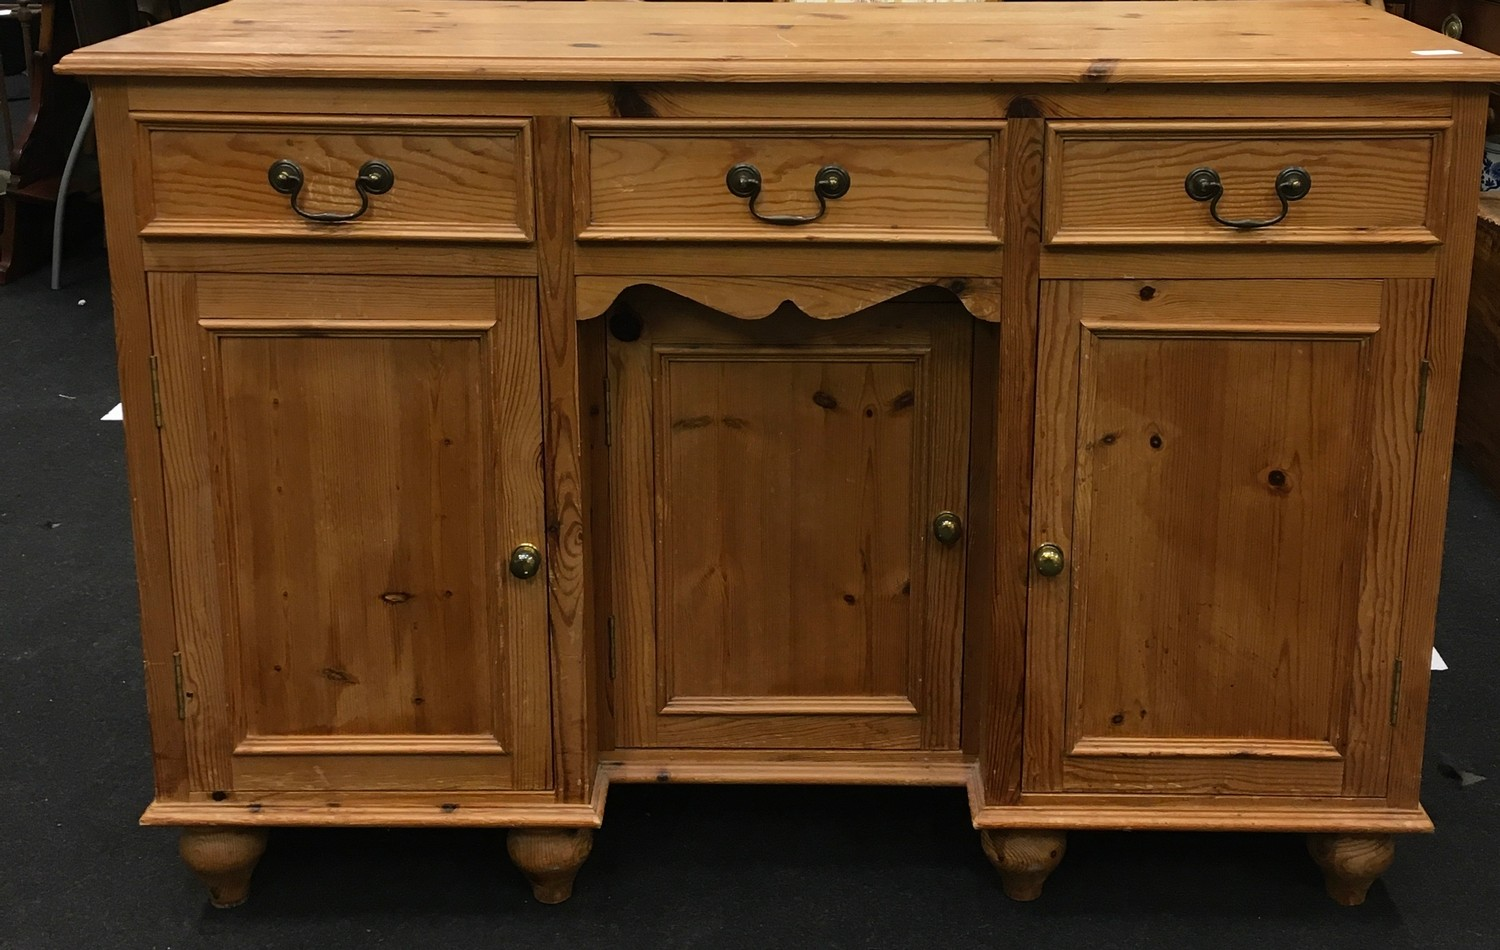 Pine 3 draw over 3 door side board with brass handles and turned feet 85x125x45cm